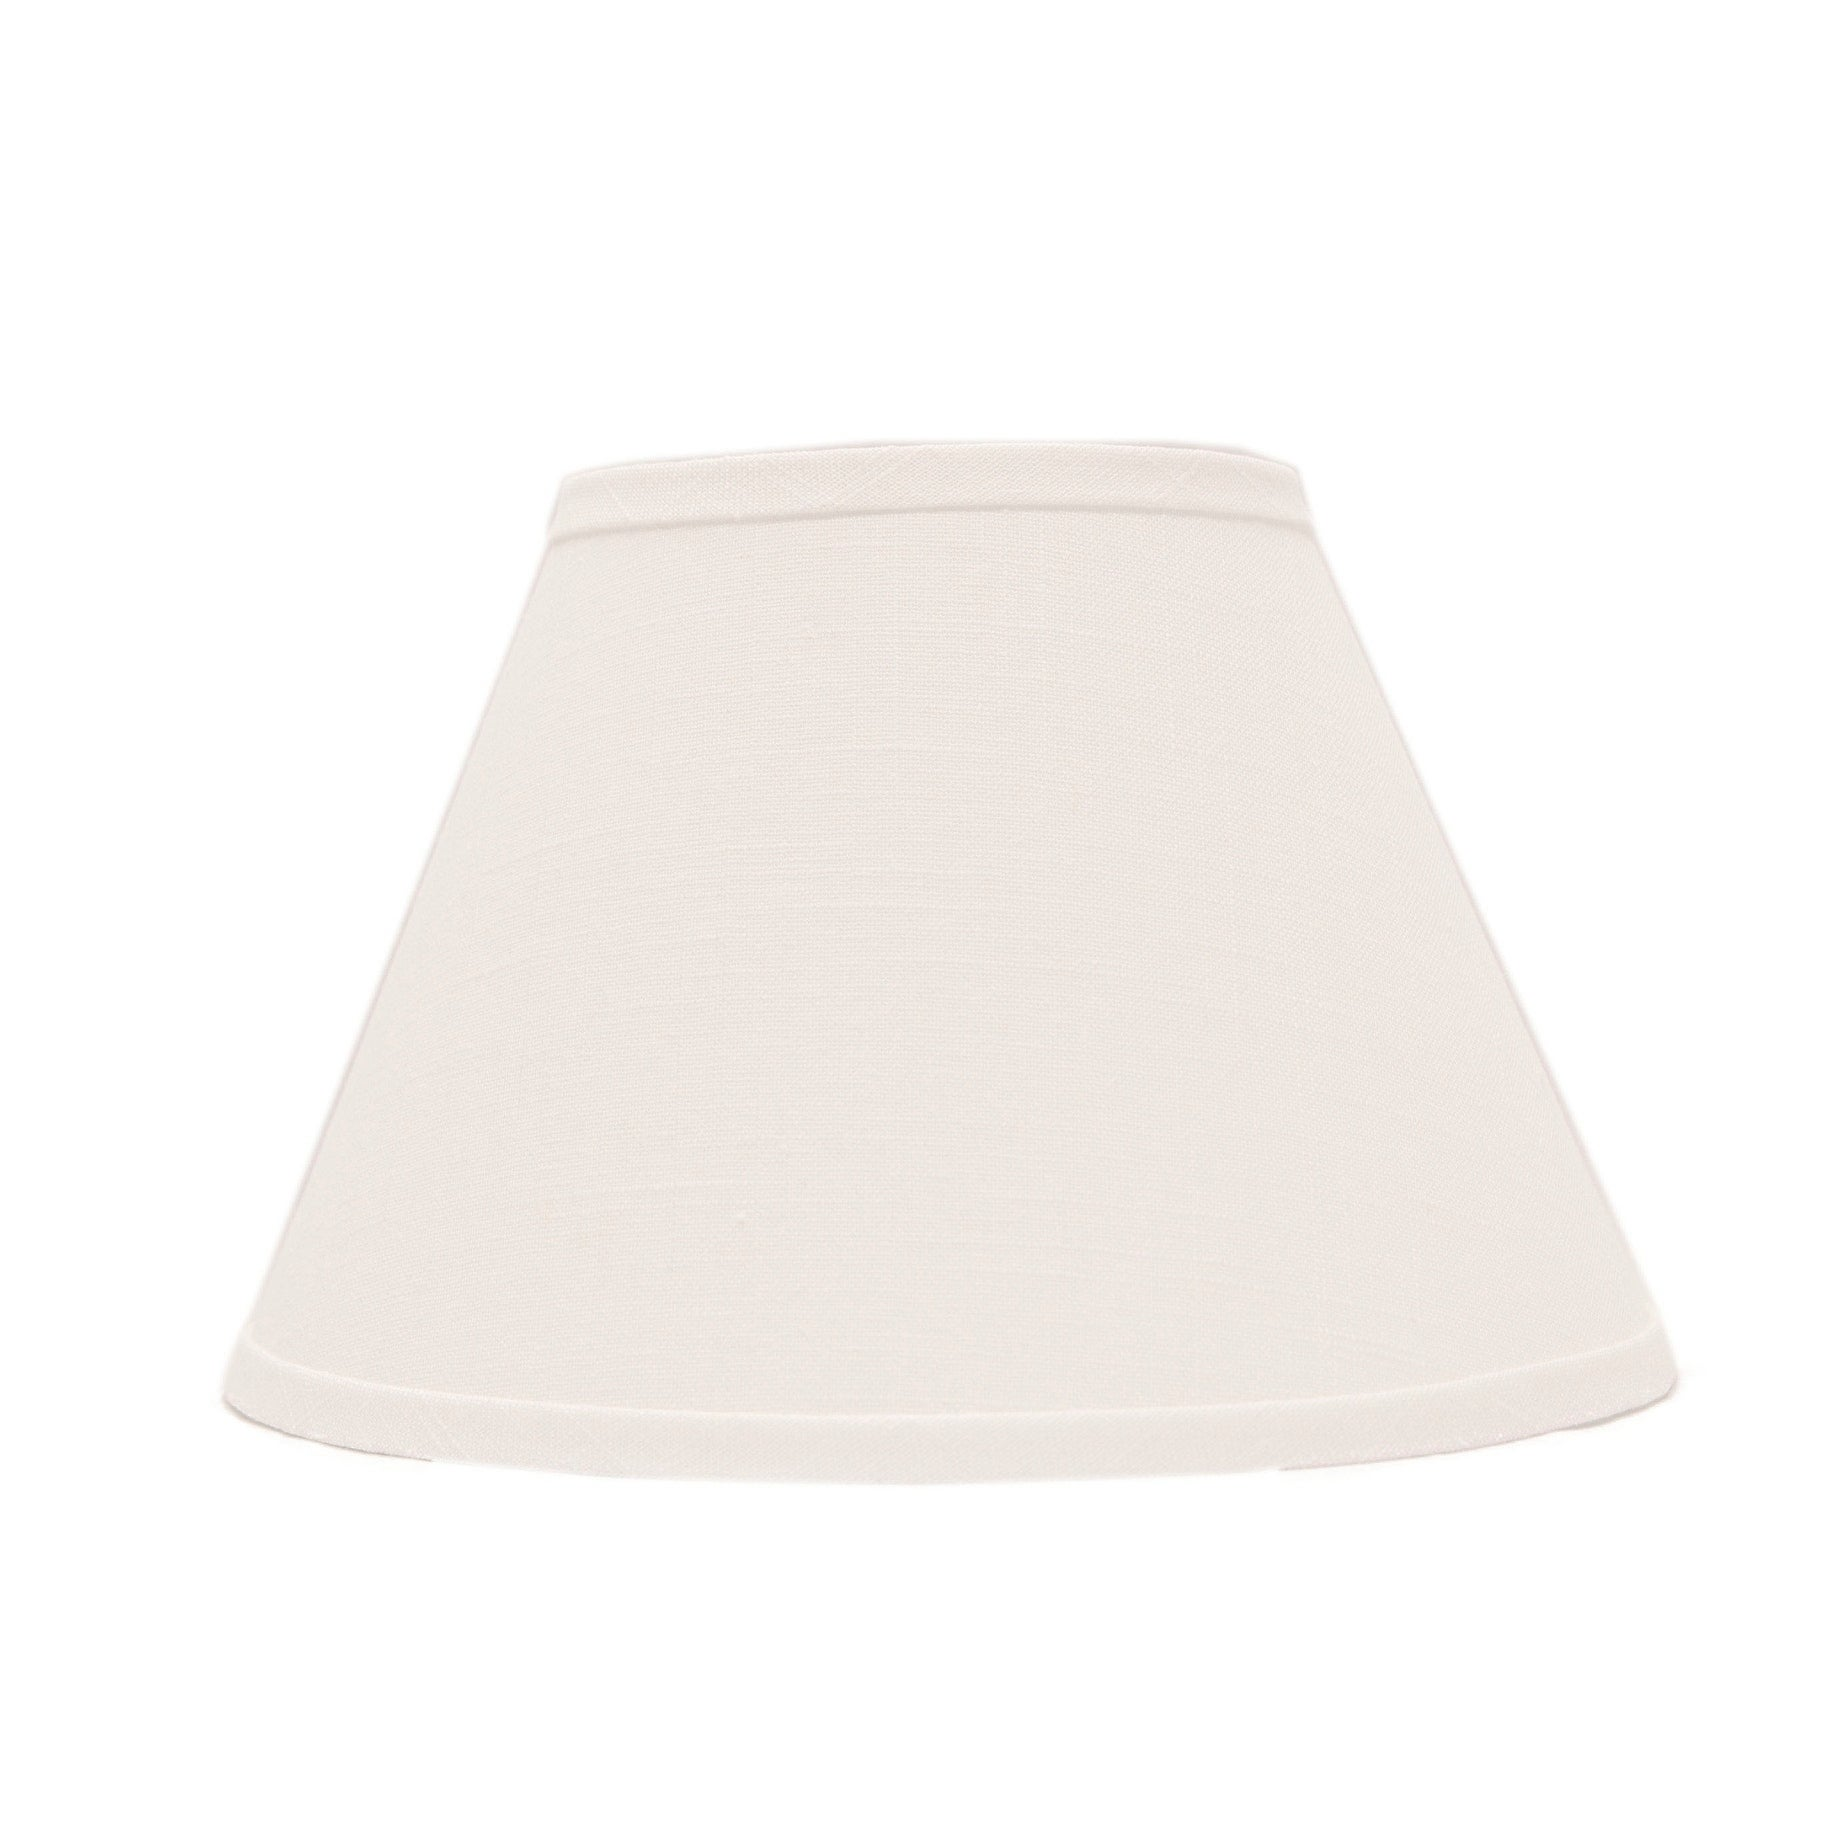 Somette White Linen 16 Inch Empire Lamp Shade With Washer Overstock 17890246